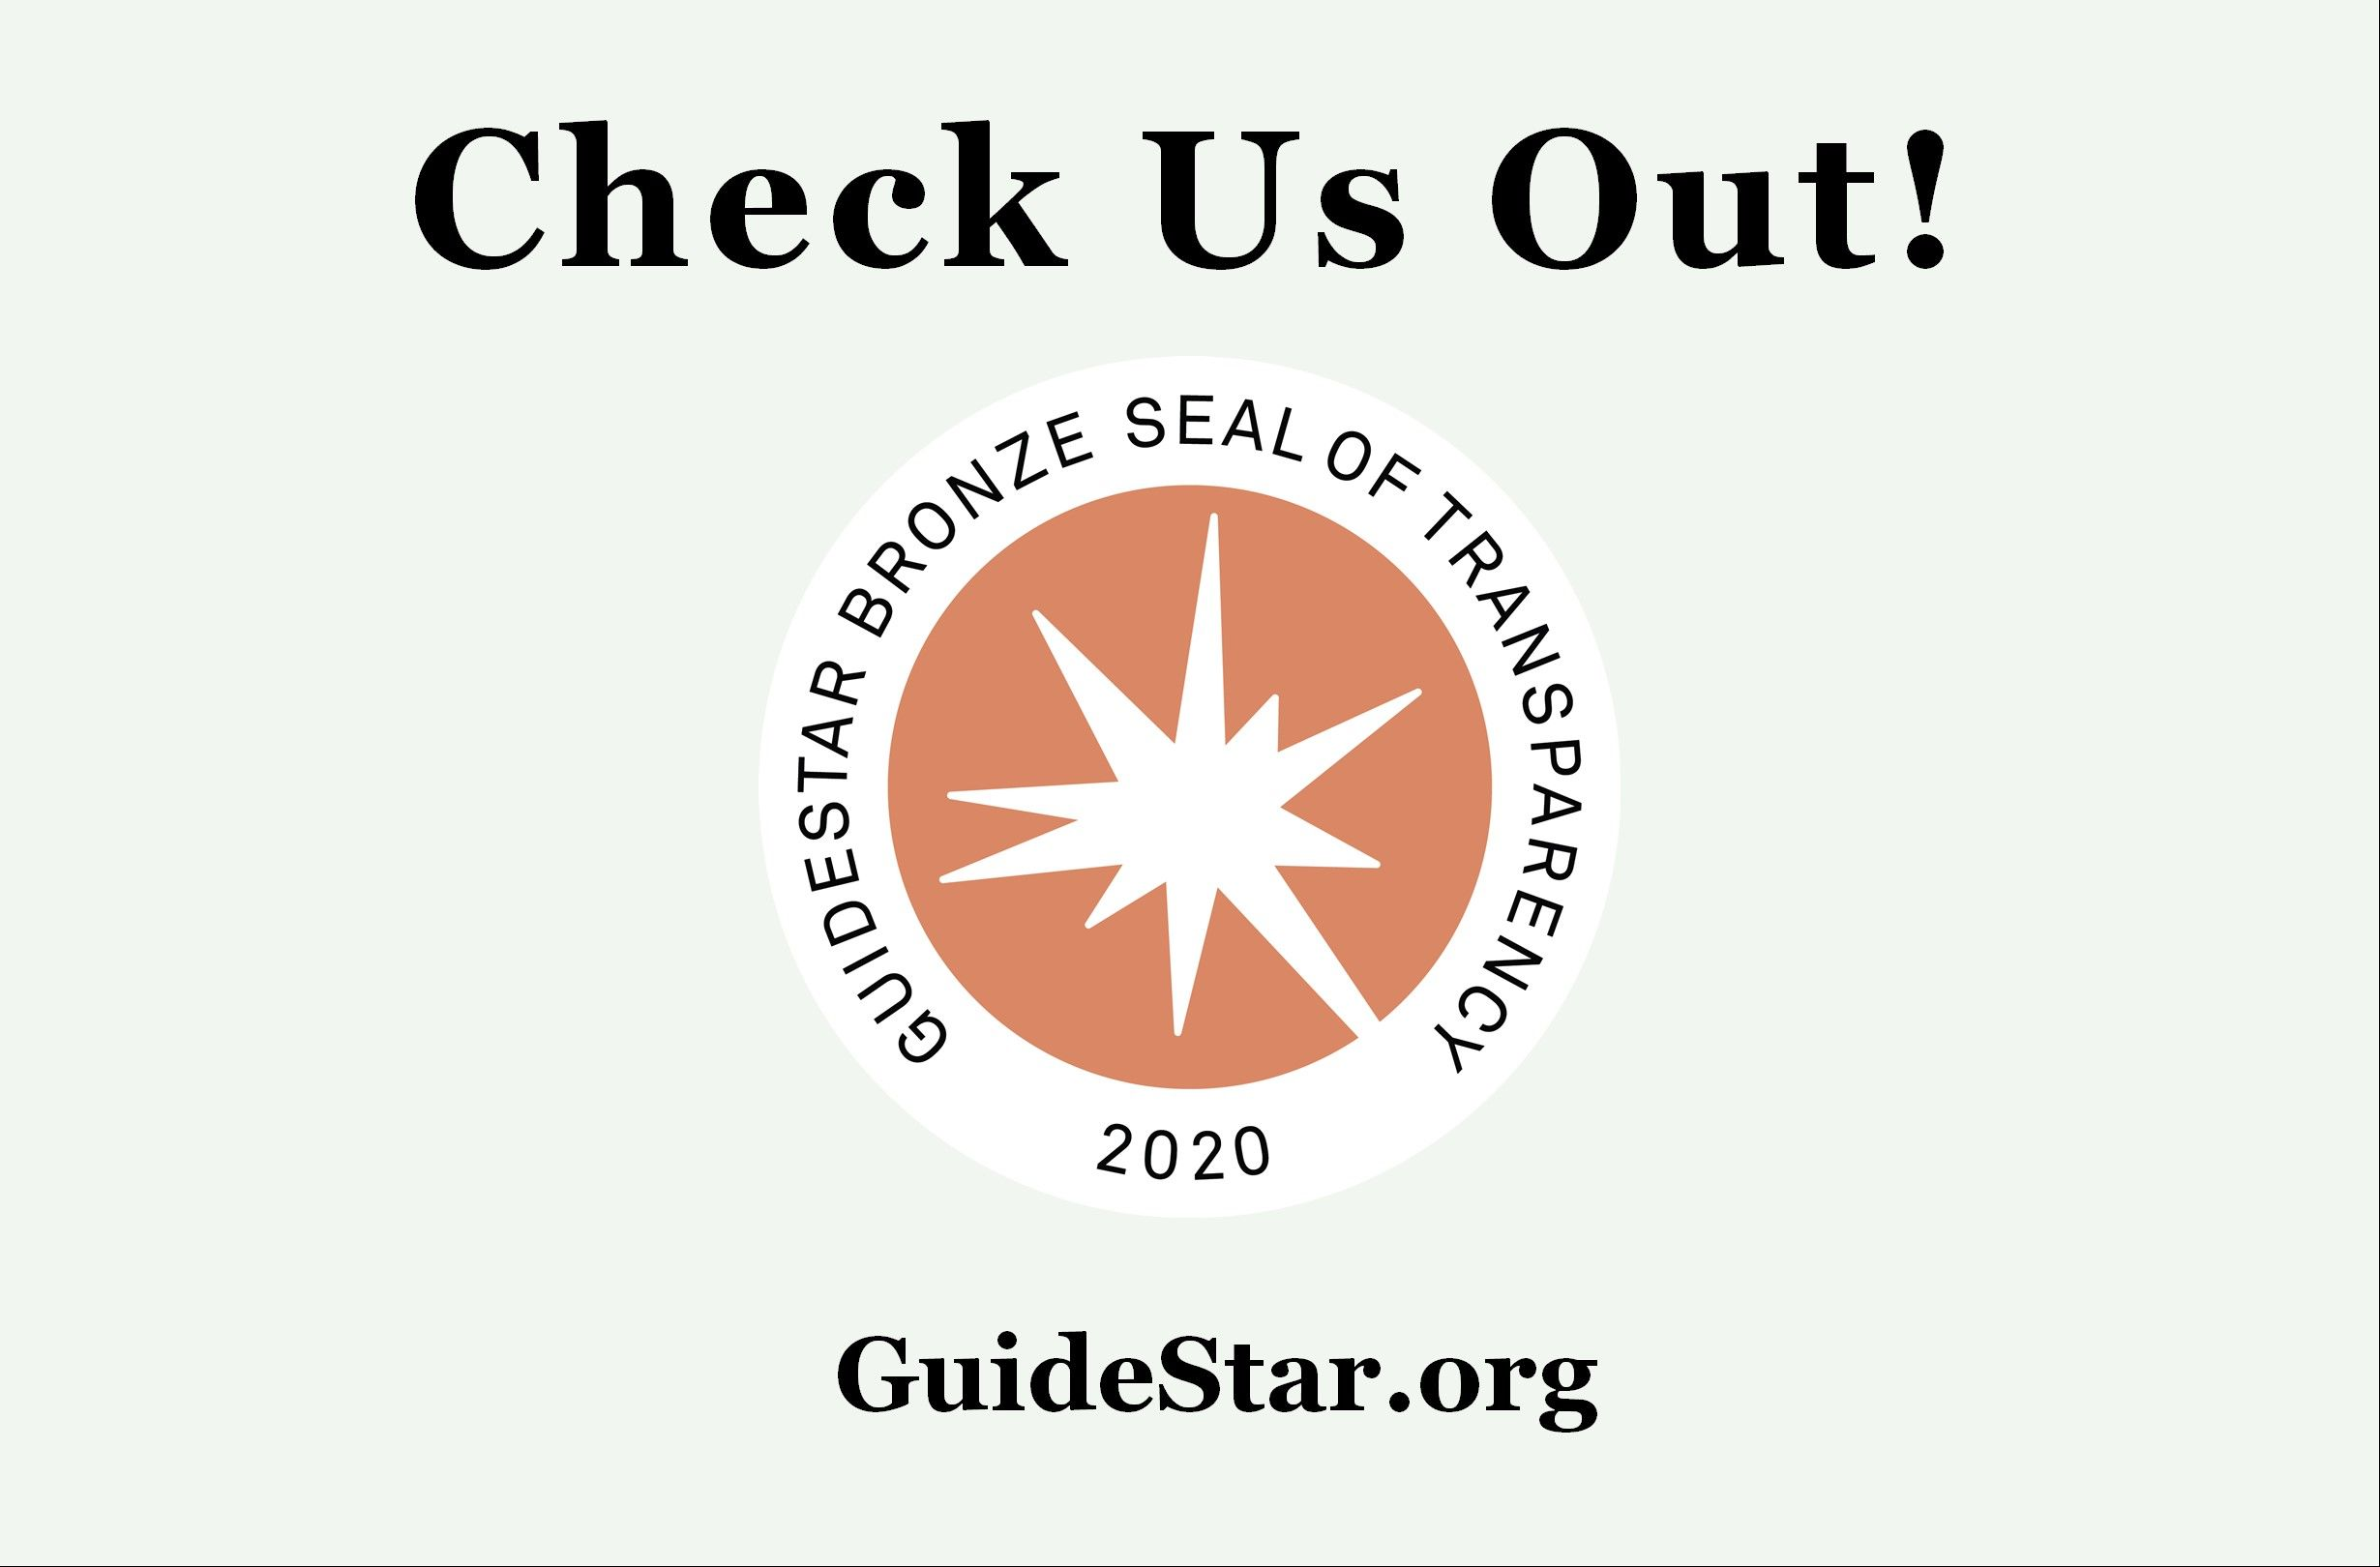 Check us out on GuideStar!